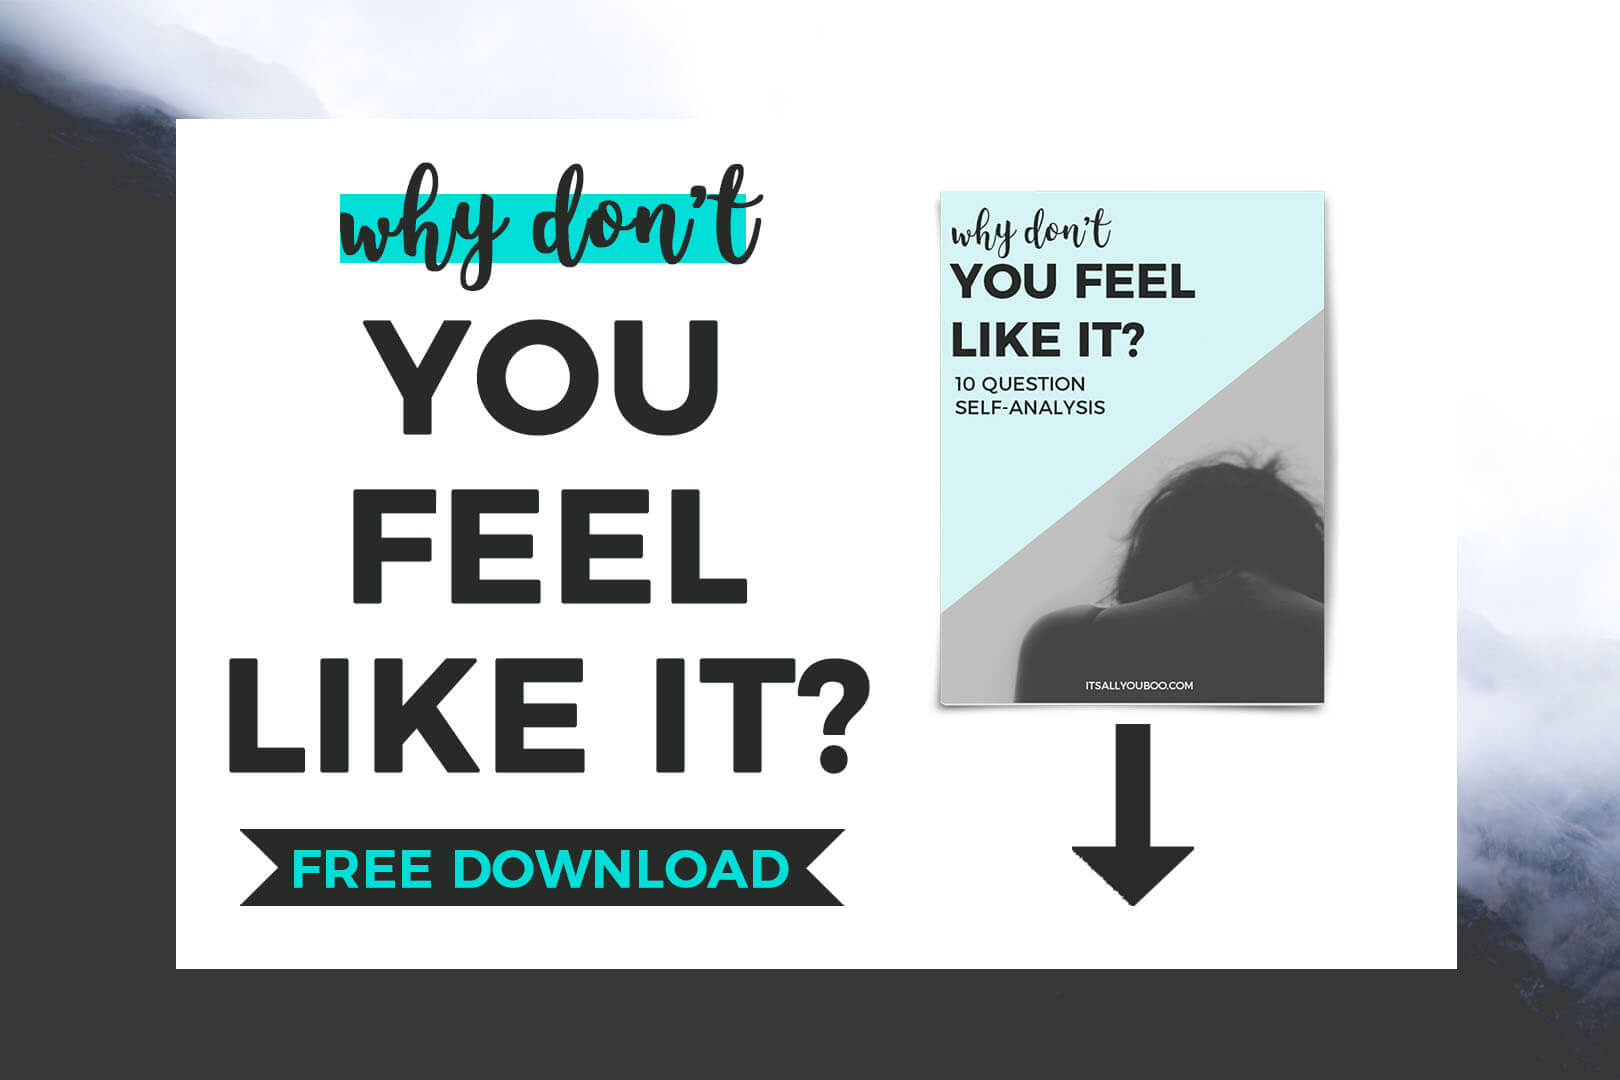 Why don't you feel like it free workbook download with cover image